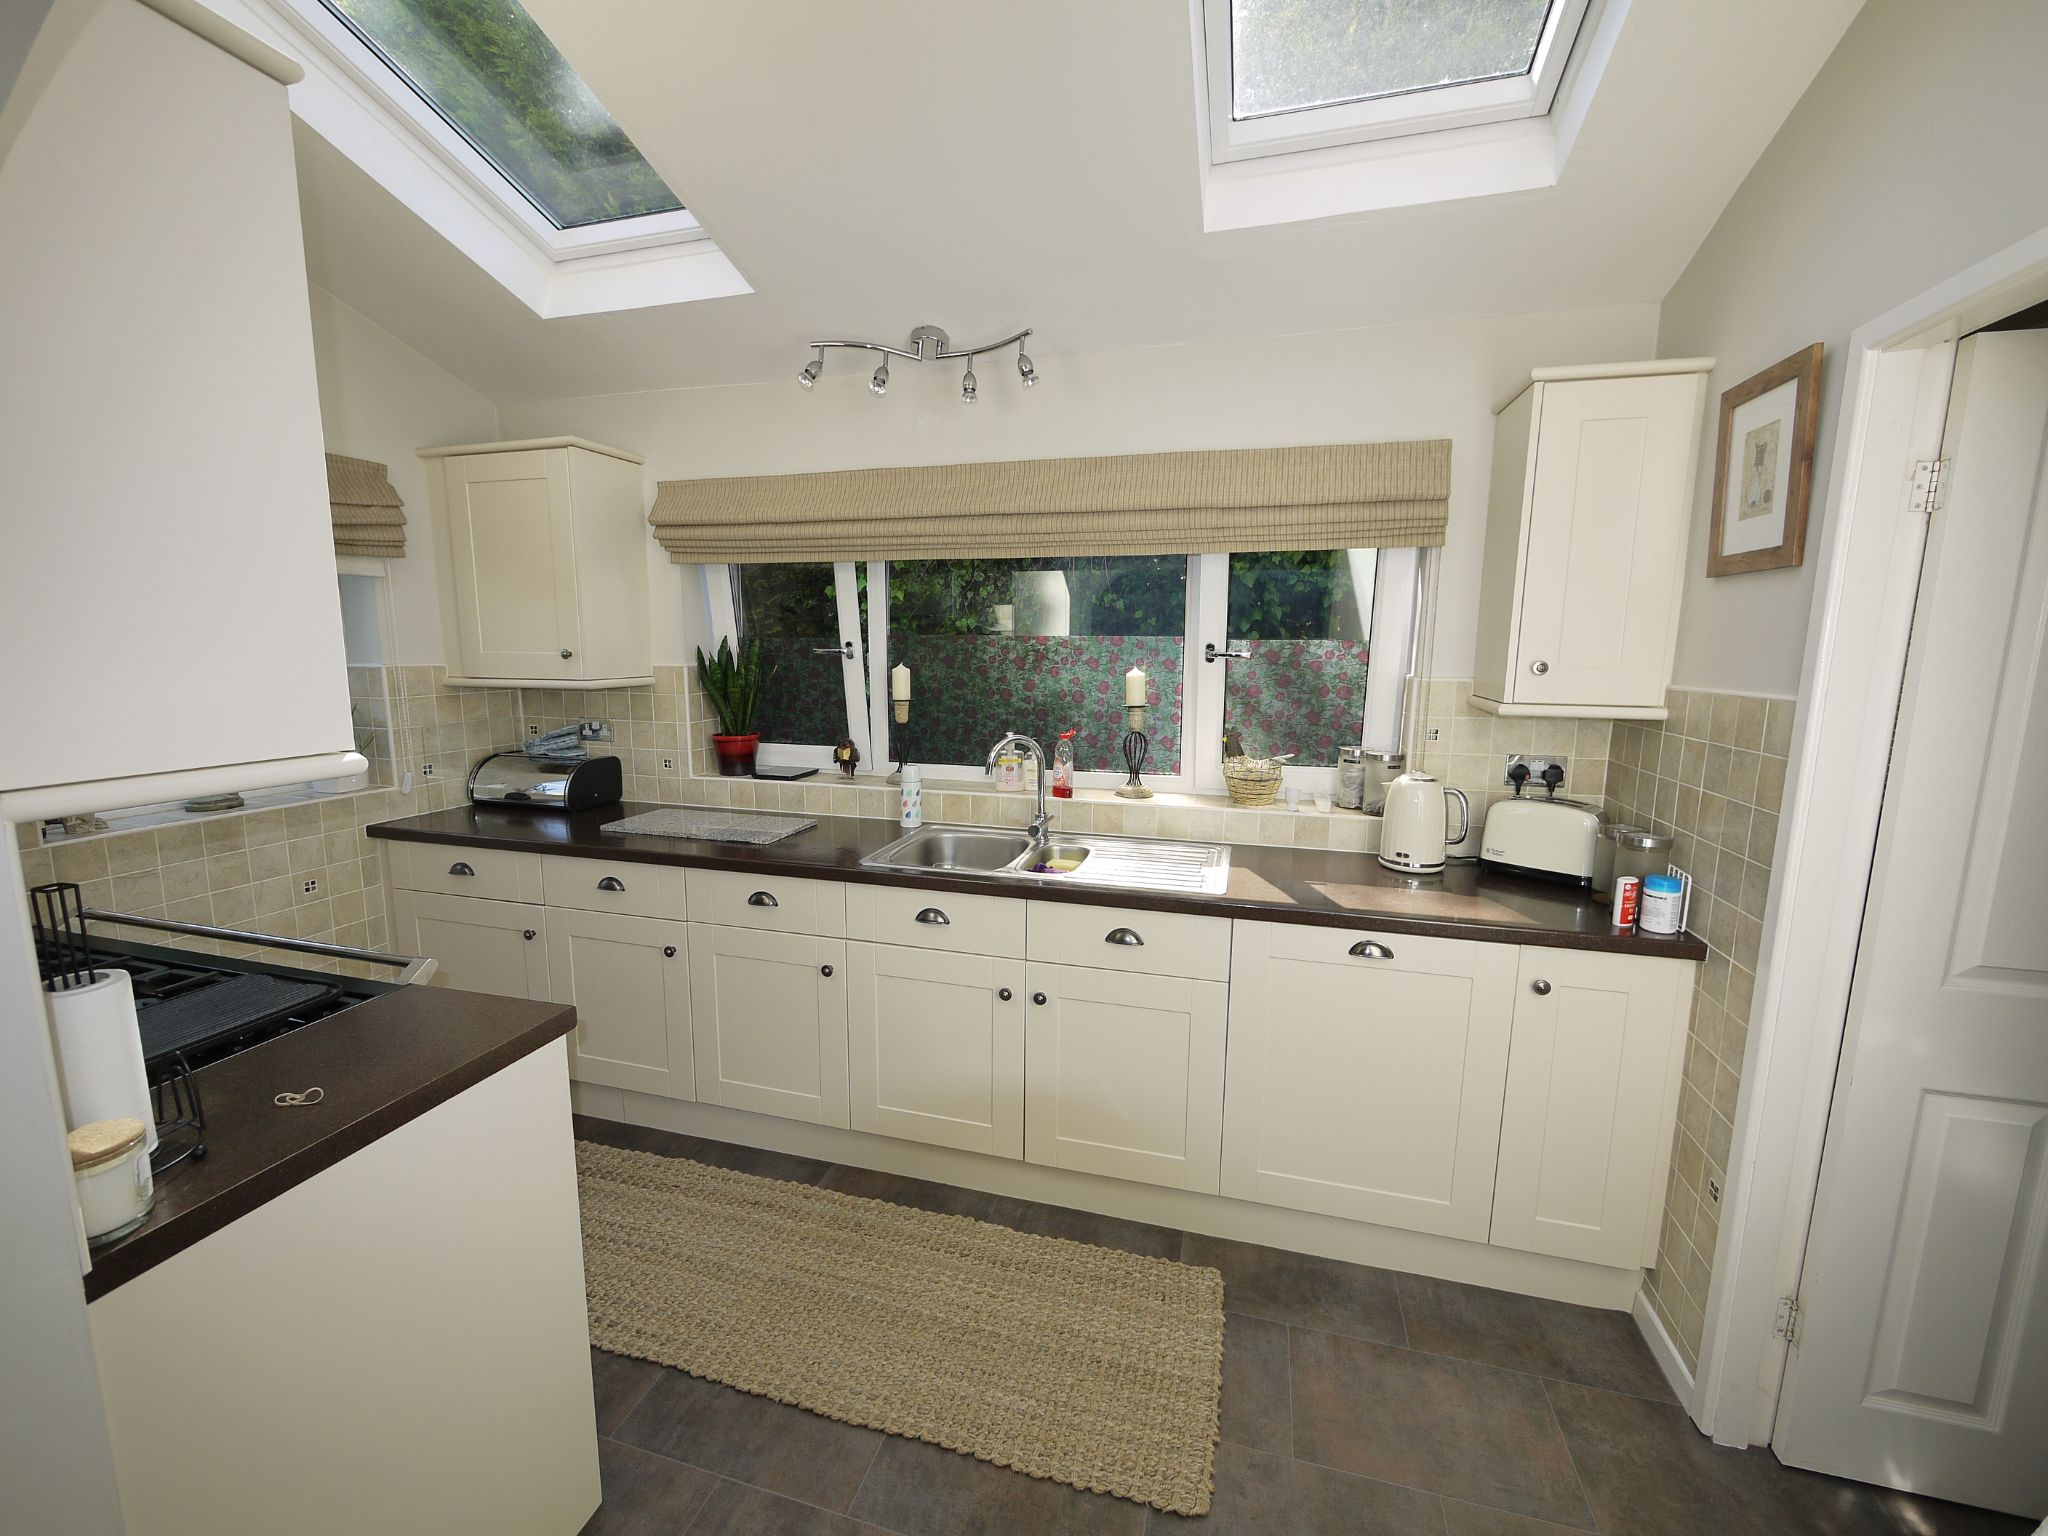 5 bedroom detached house SSTC in Brighouse - Kitchen.